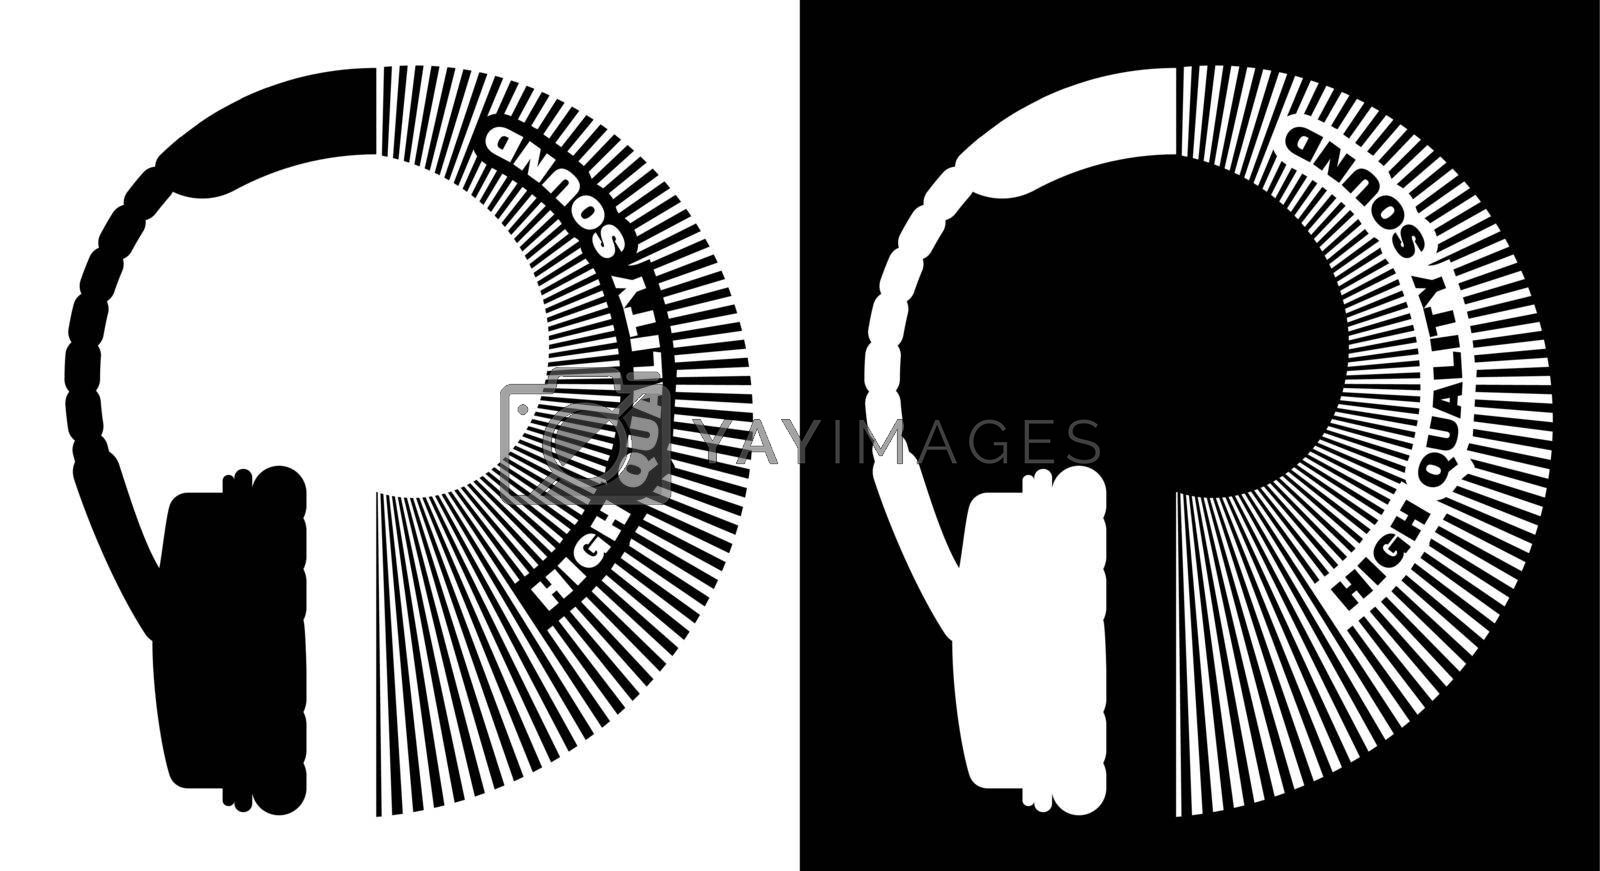 Original black and white logo, overhead headphones with stylized waves of wireless communication. High quality sound. Isolated vector